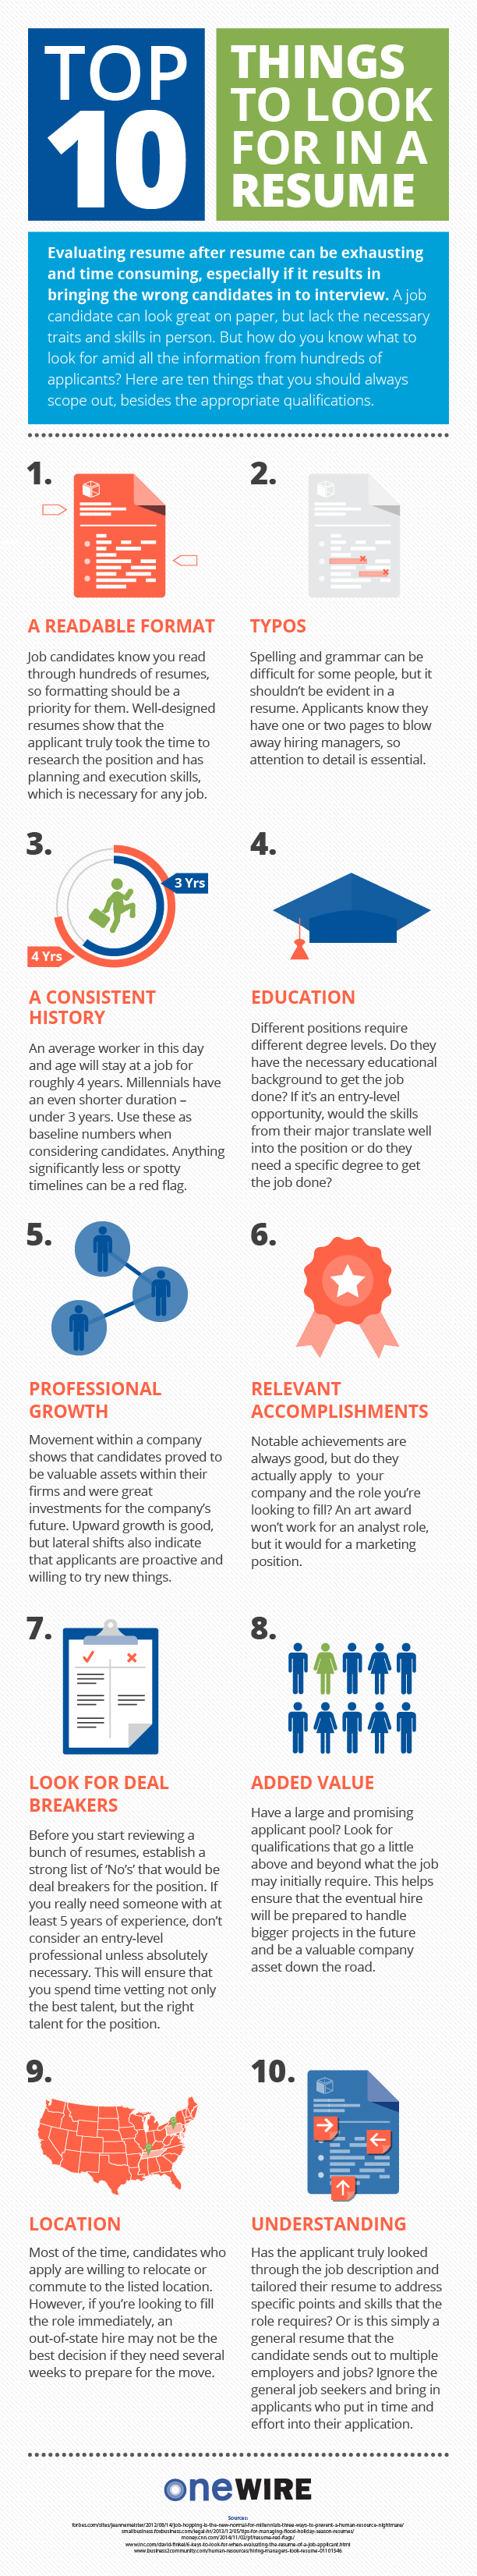 top 10 things to look for in a resume infographic